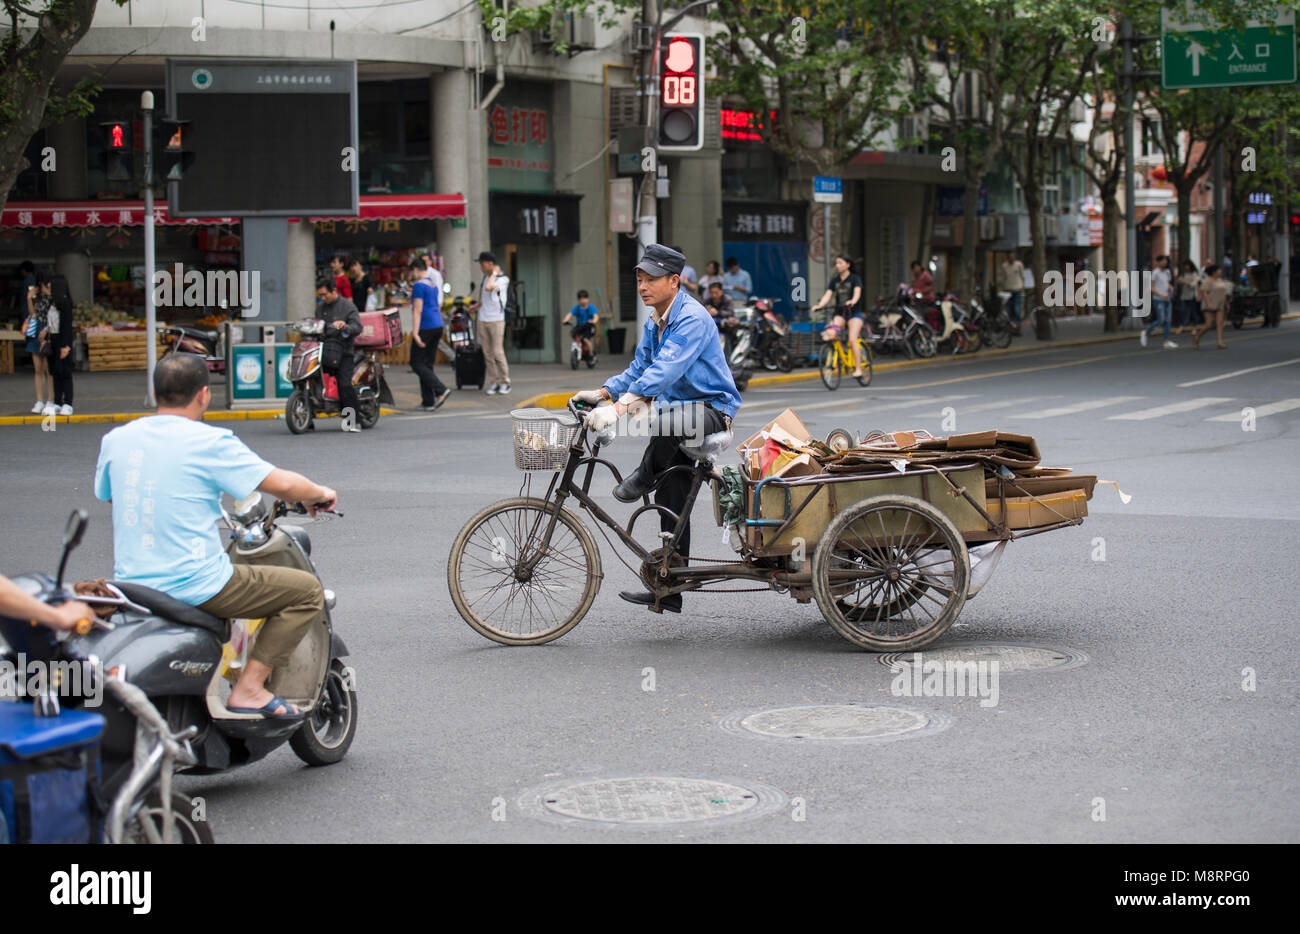 People riding bikes and scooters on the streets of Shanghai in China - Stock Image